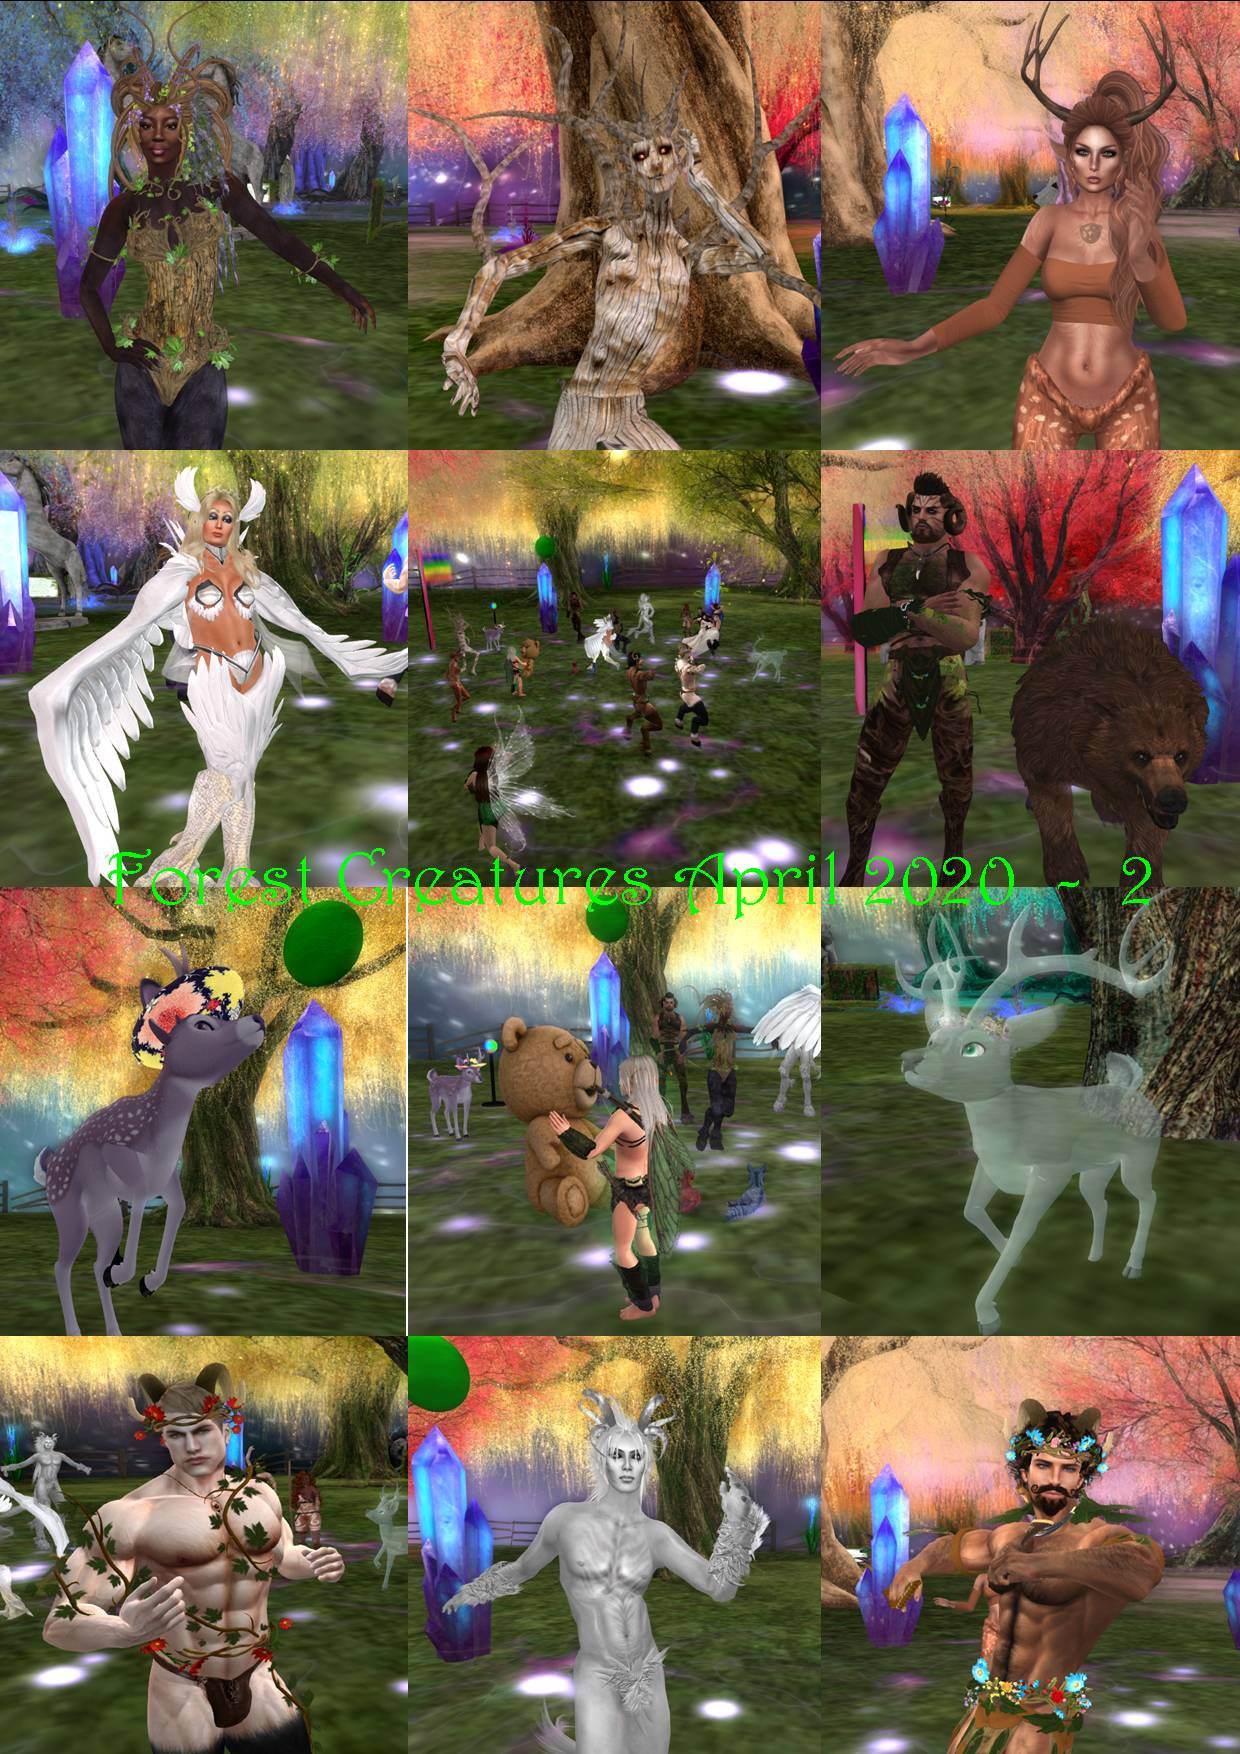 FOREST CREATURES COLLAGES APRIL 2020 - 2